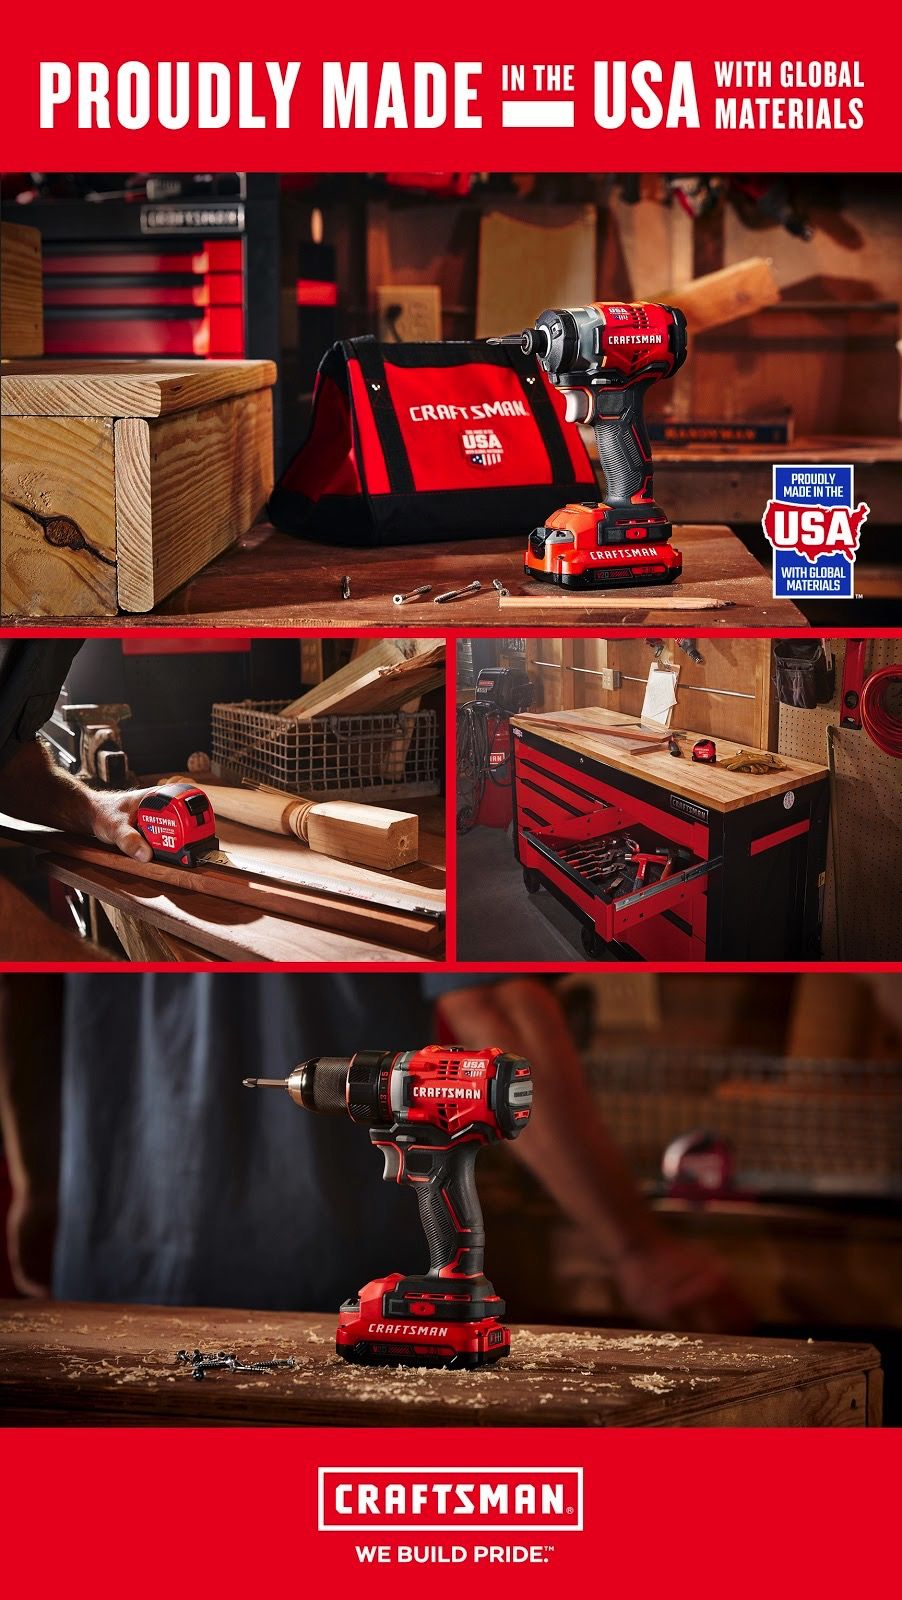 Made In America With Global Materials Craftsman S Bringing Job Opportunities And Pride In Craftsmanship Back T Craftsman Tools Sears Home Improvement Craftsman